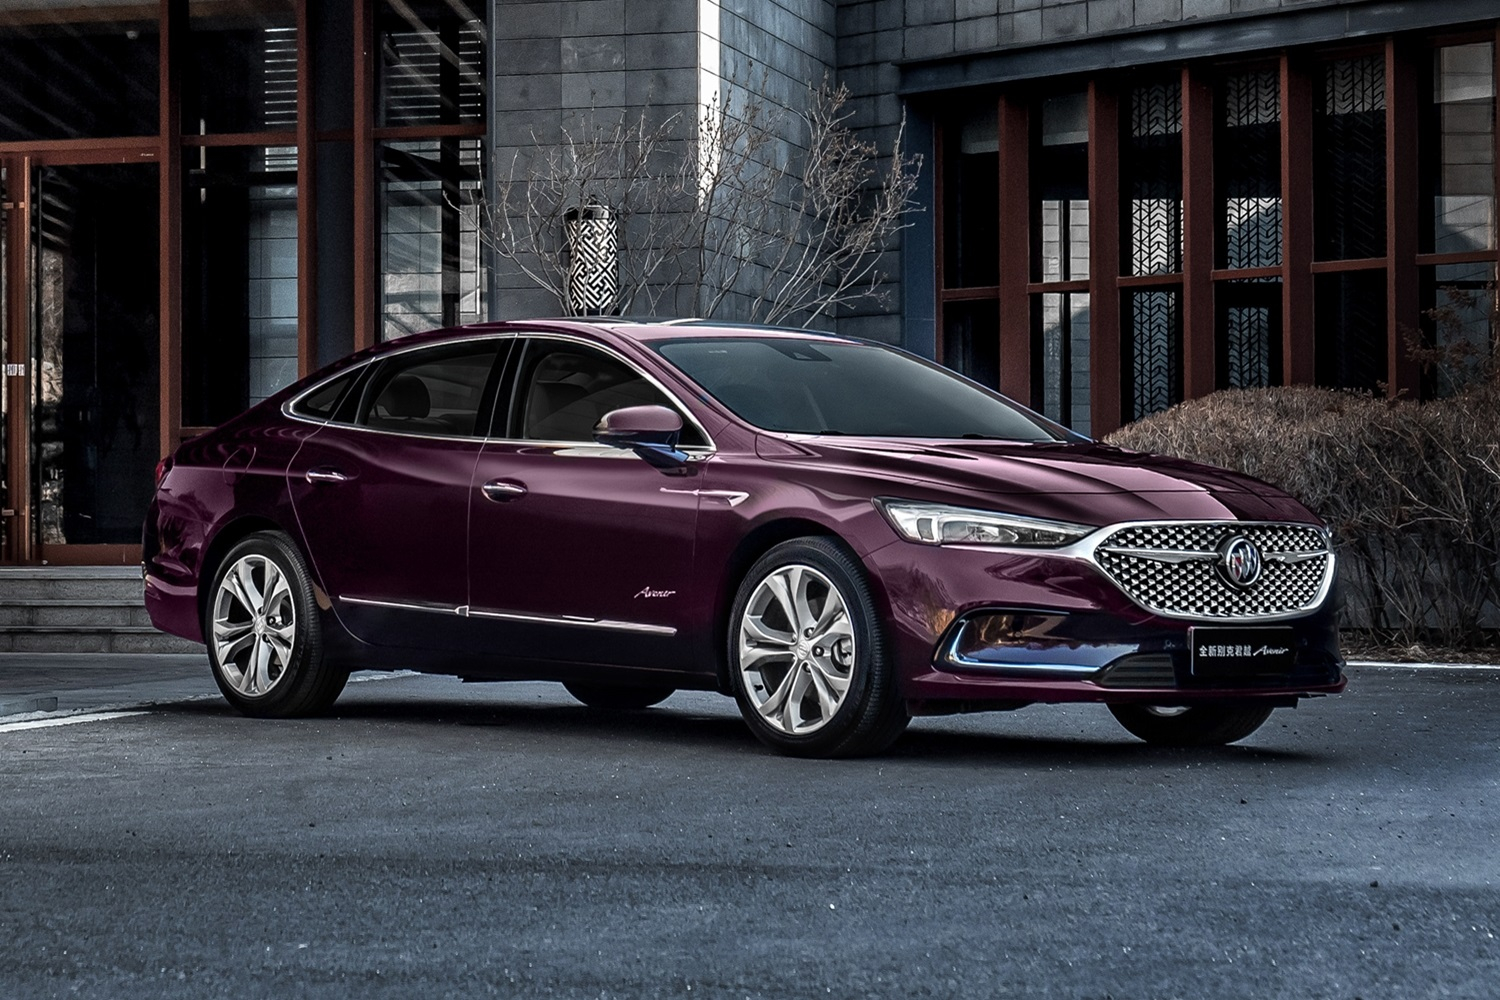 2021 Buick Lacrosse Gets More Refined Than Ever | Gm Authority 2021 Buick Lacrosse Mpg, Engine, Price